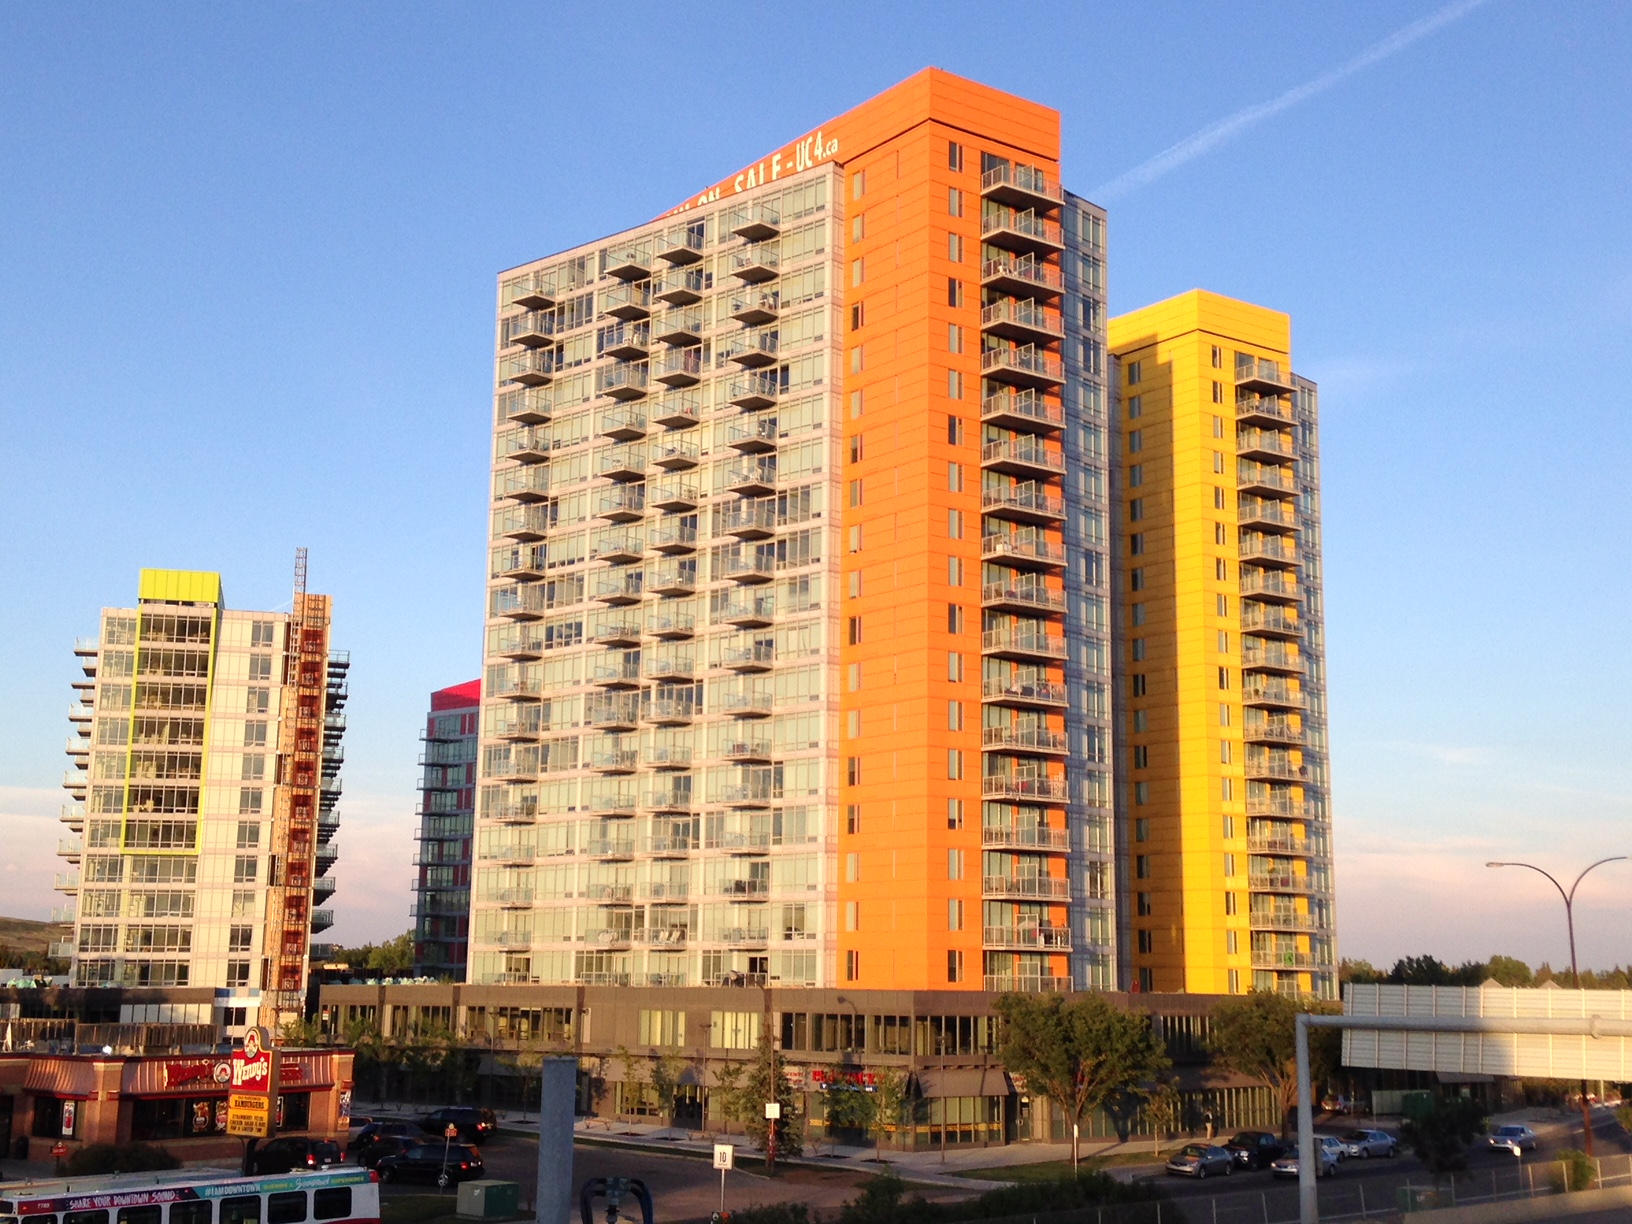 The four colourful condo towers at the Brentwood LRT near the Co-op grocery store, and within walking distance to the University of Calgary were opposed by neighbours.